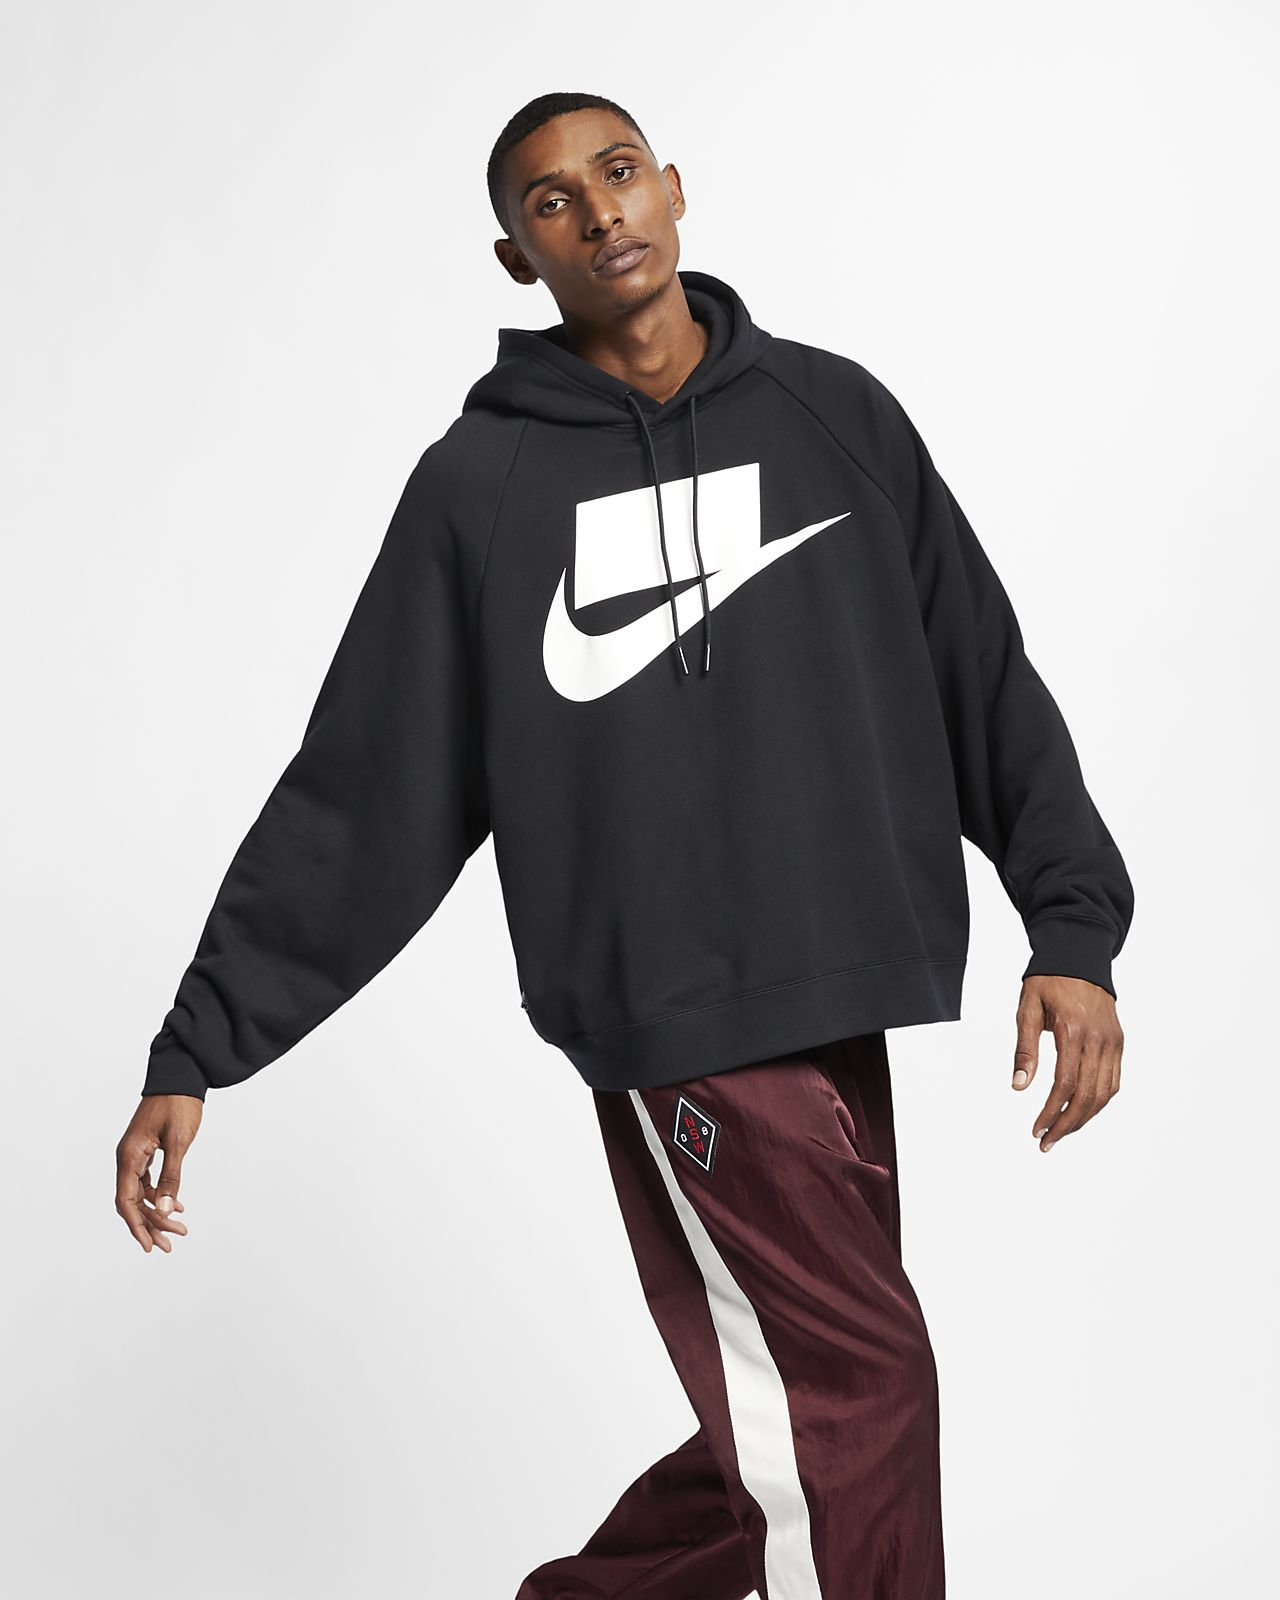 cd990d035724 Nike Sportswear NSW Men s French Terry Hoodie. Nike.com